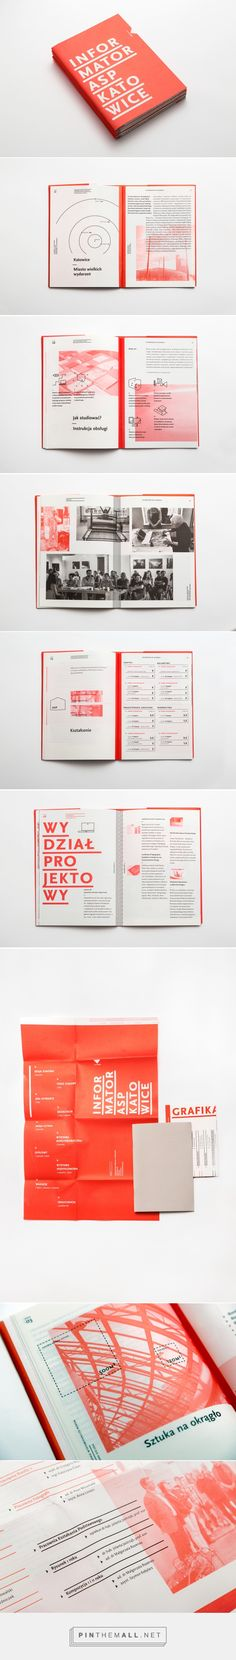 Informator ASP Katowice / Guide on Behance - created via https://pinthemall.net